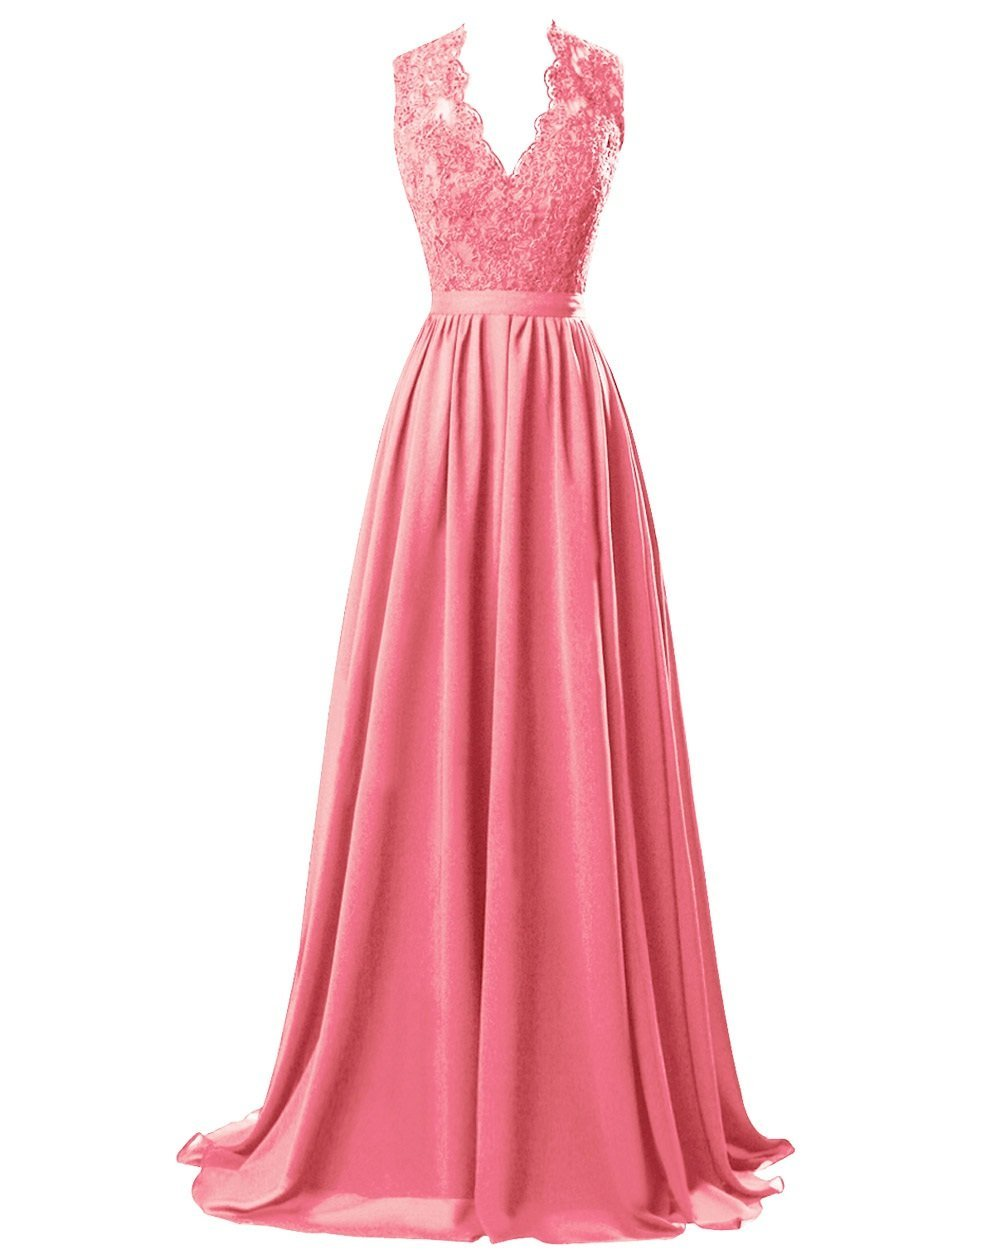 Coral Orange  lace chiffon long bridesmaid wedding prom evening ballgown dress cut out back Loulous Bridal Boutique Ltd UK